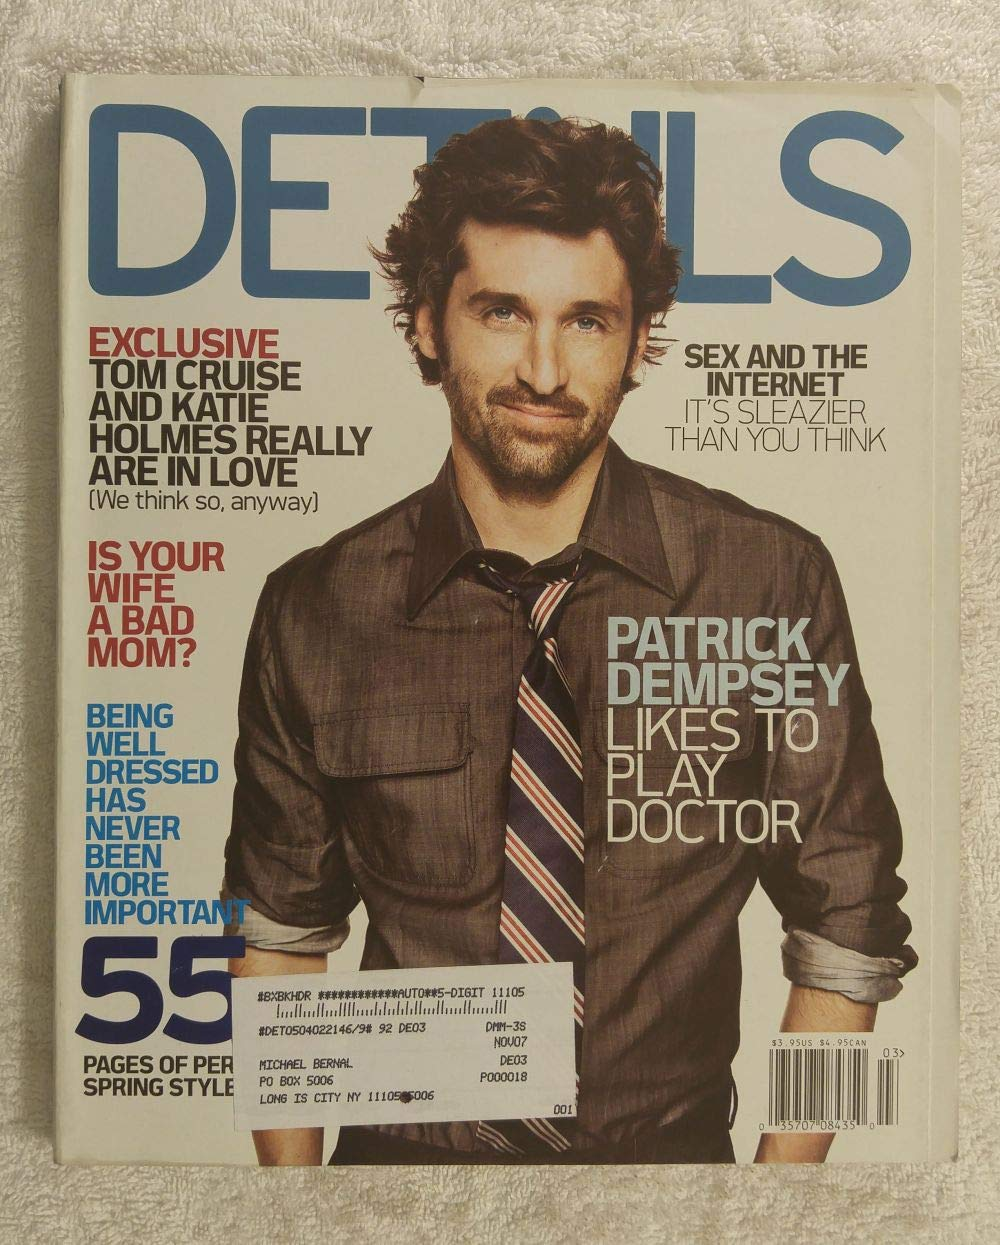 Patrick Dempsey Likes To Play Doctor Details Magazine March